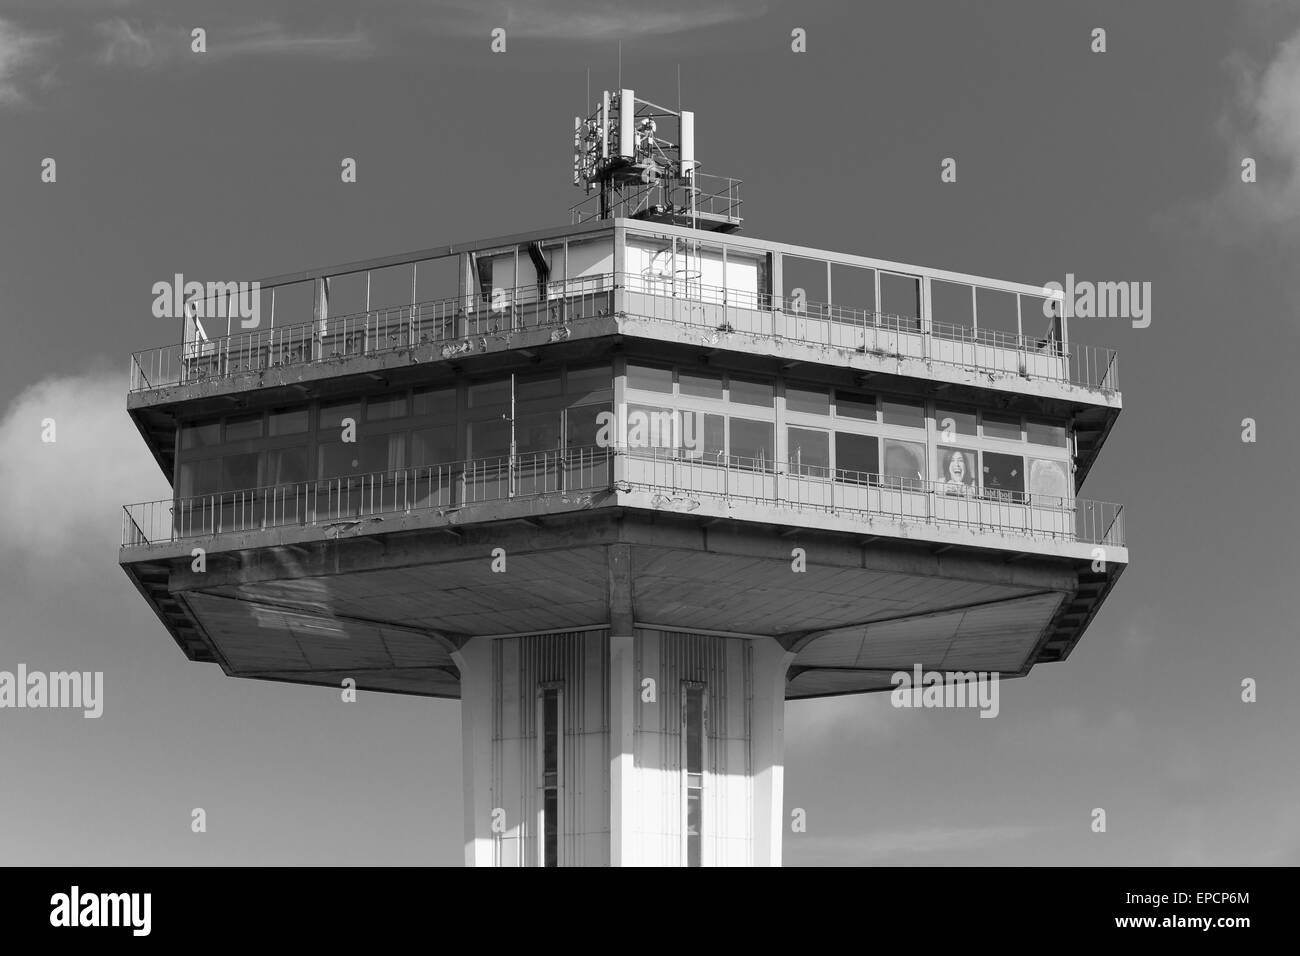 The Pennine Tower, part of Lancaster Services, opened 1965, designed by architects T.P. Bennett and Son. Monochrome - Stock Image